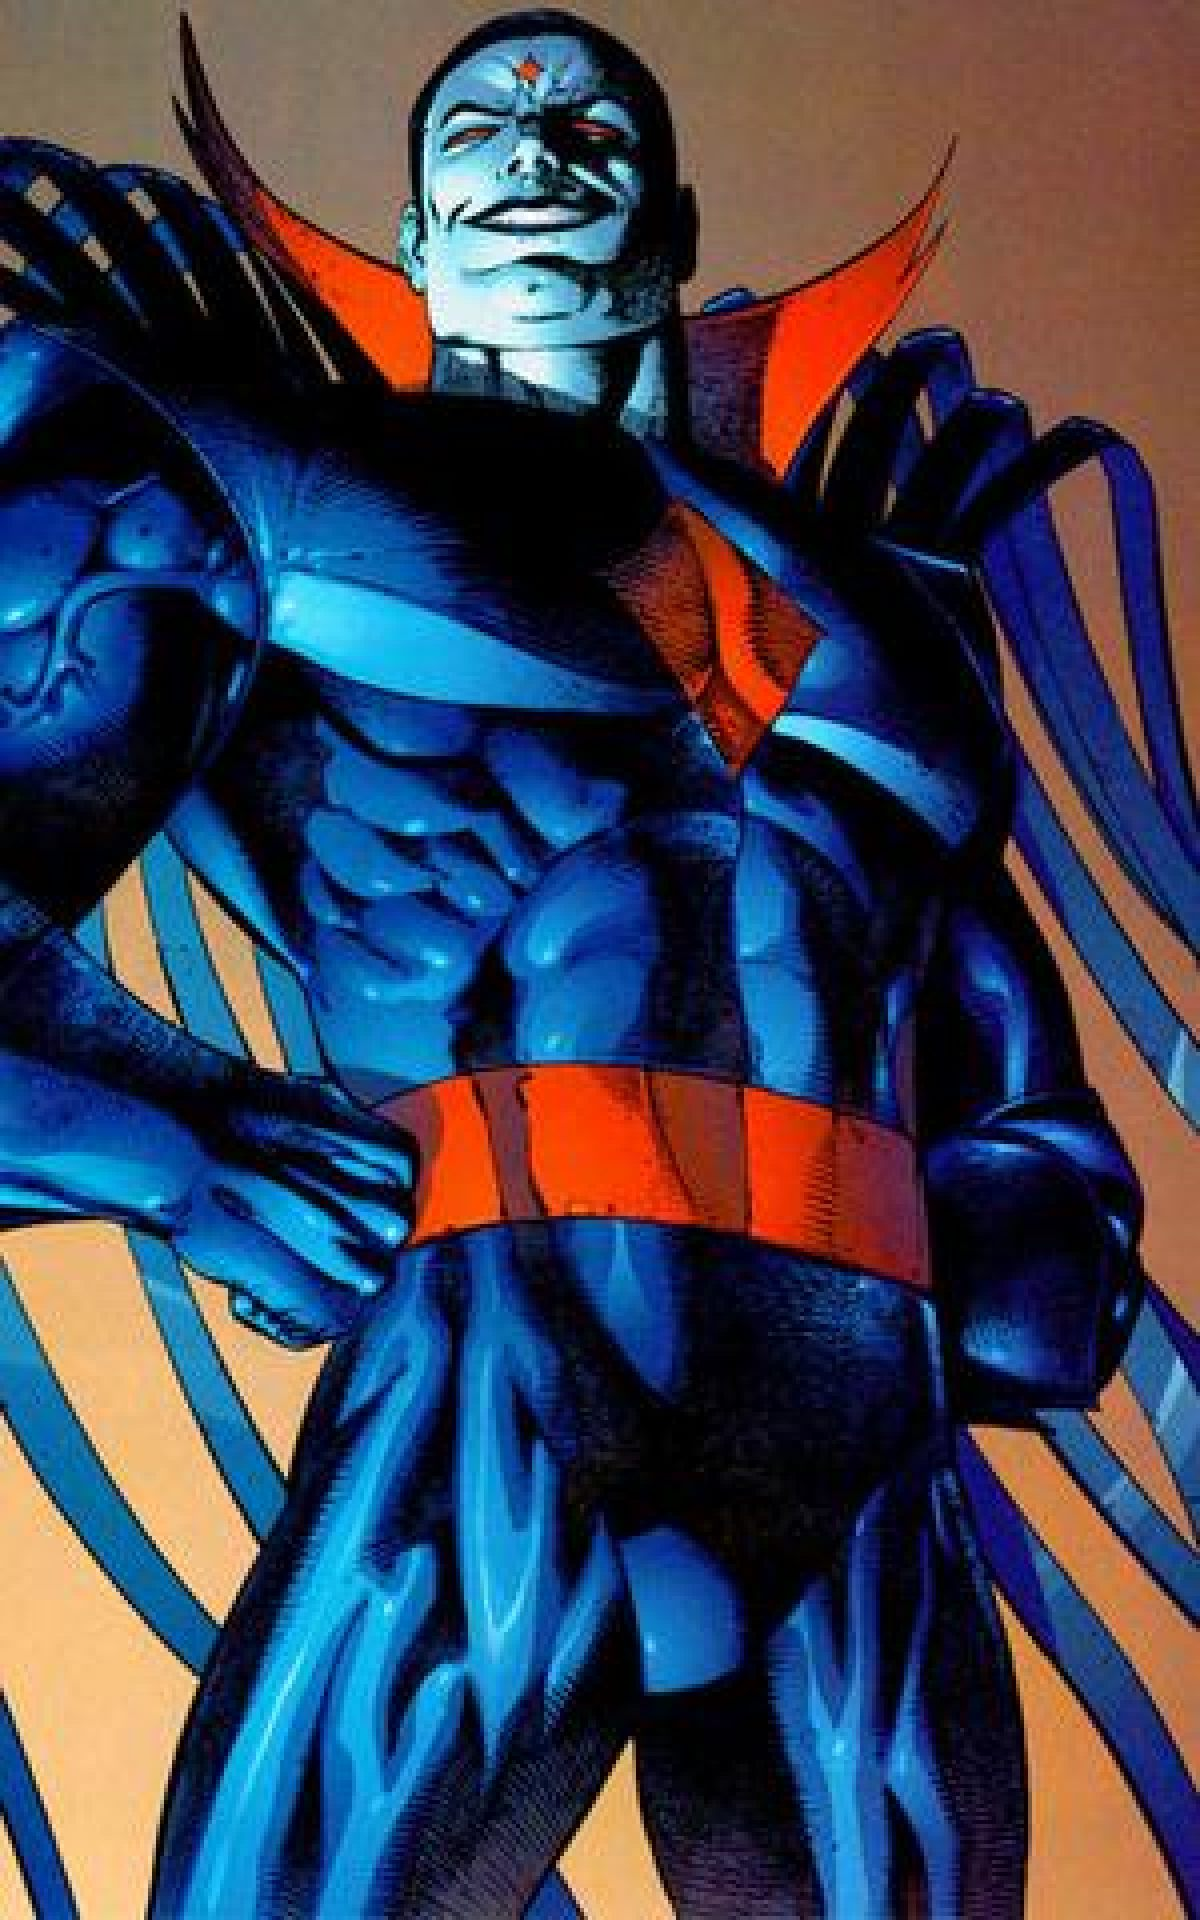 X Men Days Of Future Past Mr Sinister Who Will Peter Dinklag...